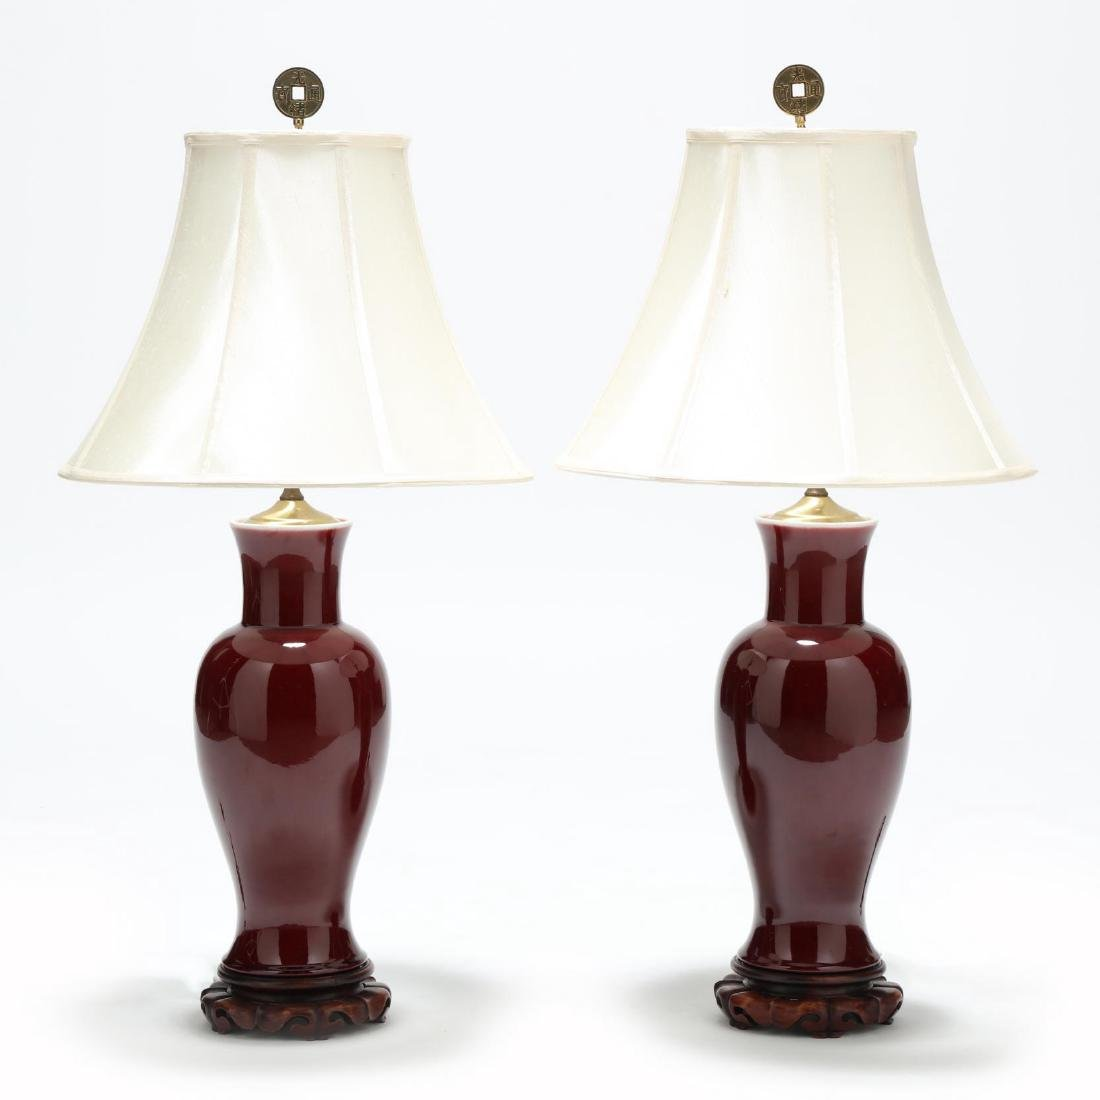 A Pair of Large Chinese Sang de Boeuf Vase Lamps